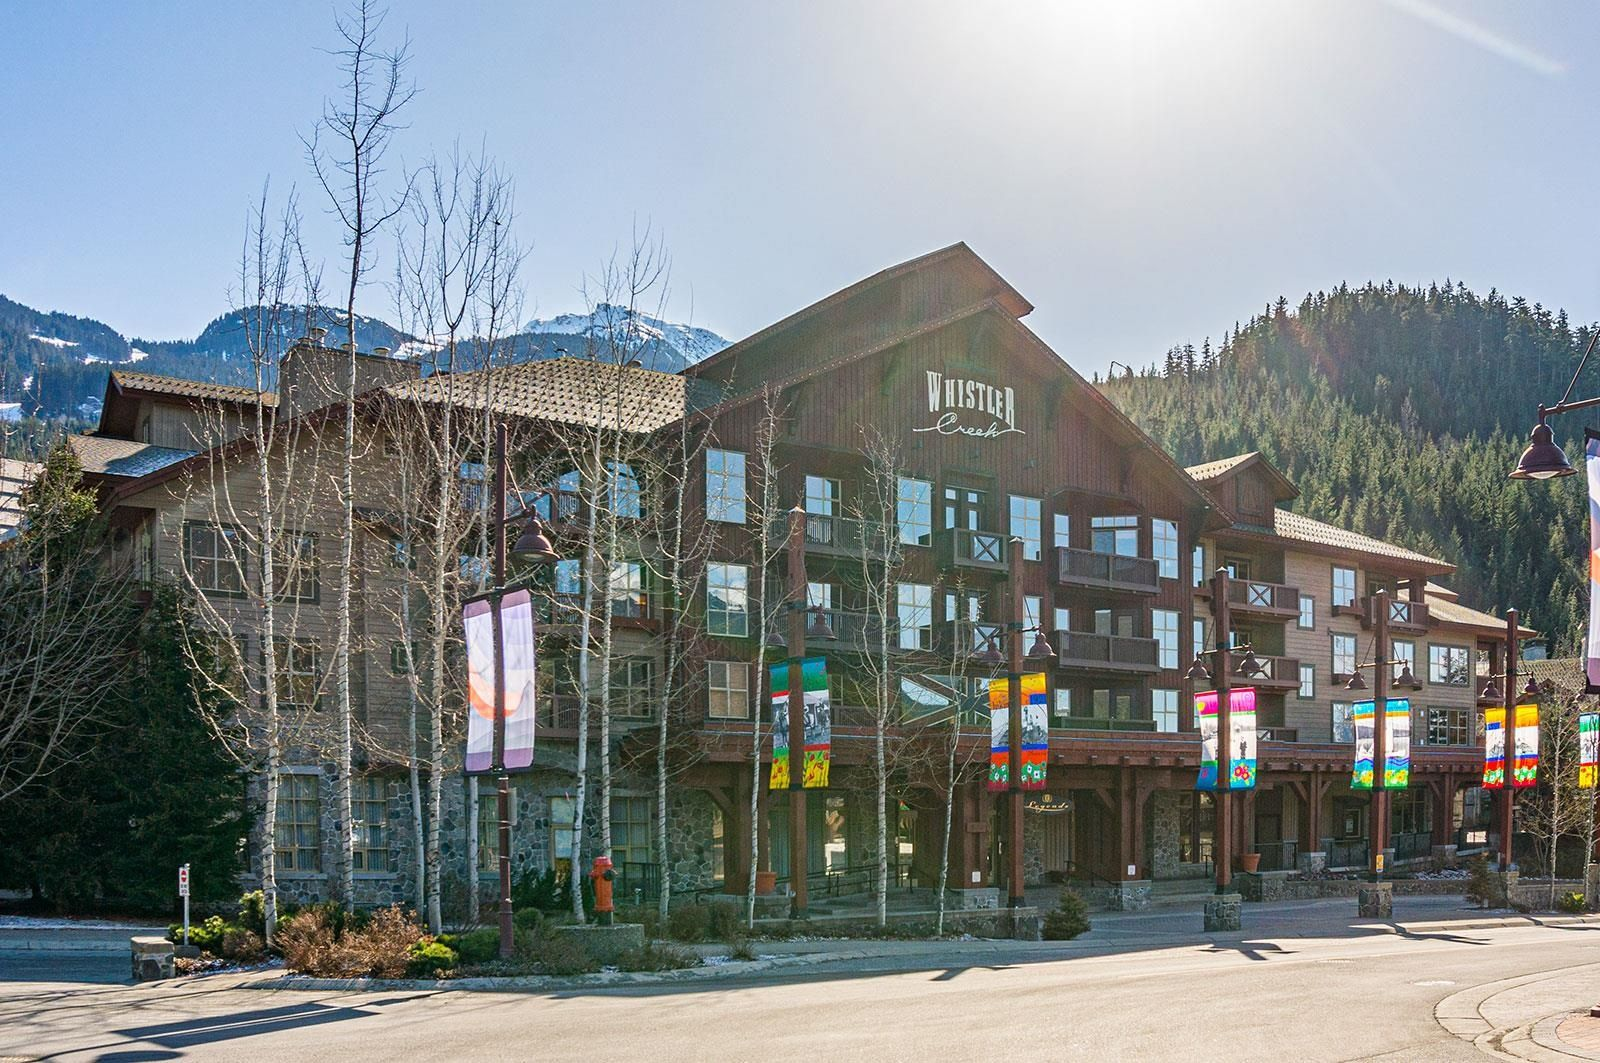 """Main Photo: 203A 2036 LONDON Lane in Whistler: Whistler Creek Condo for sale in """"LEGENDS"""" : MLS®# R2623208"""